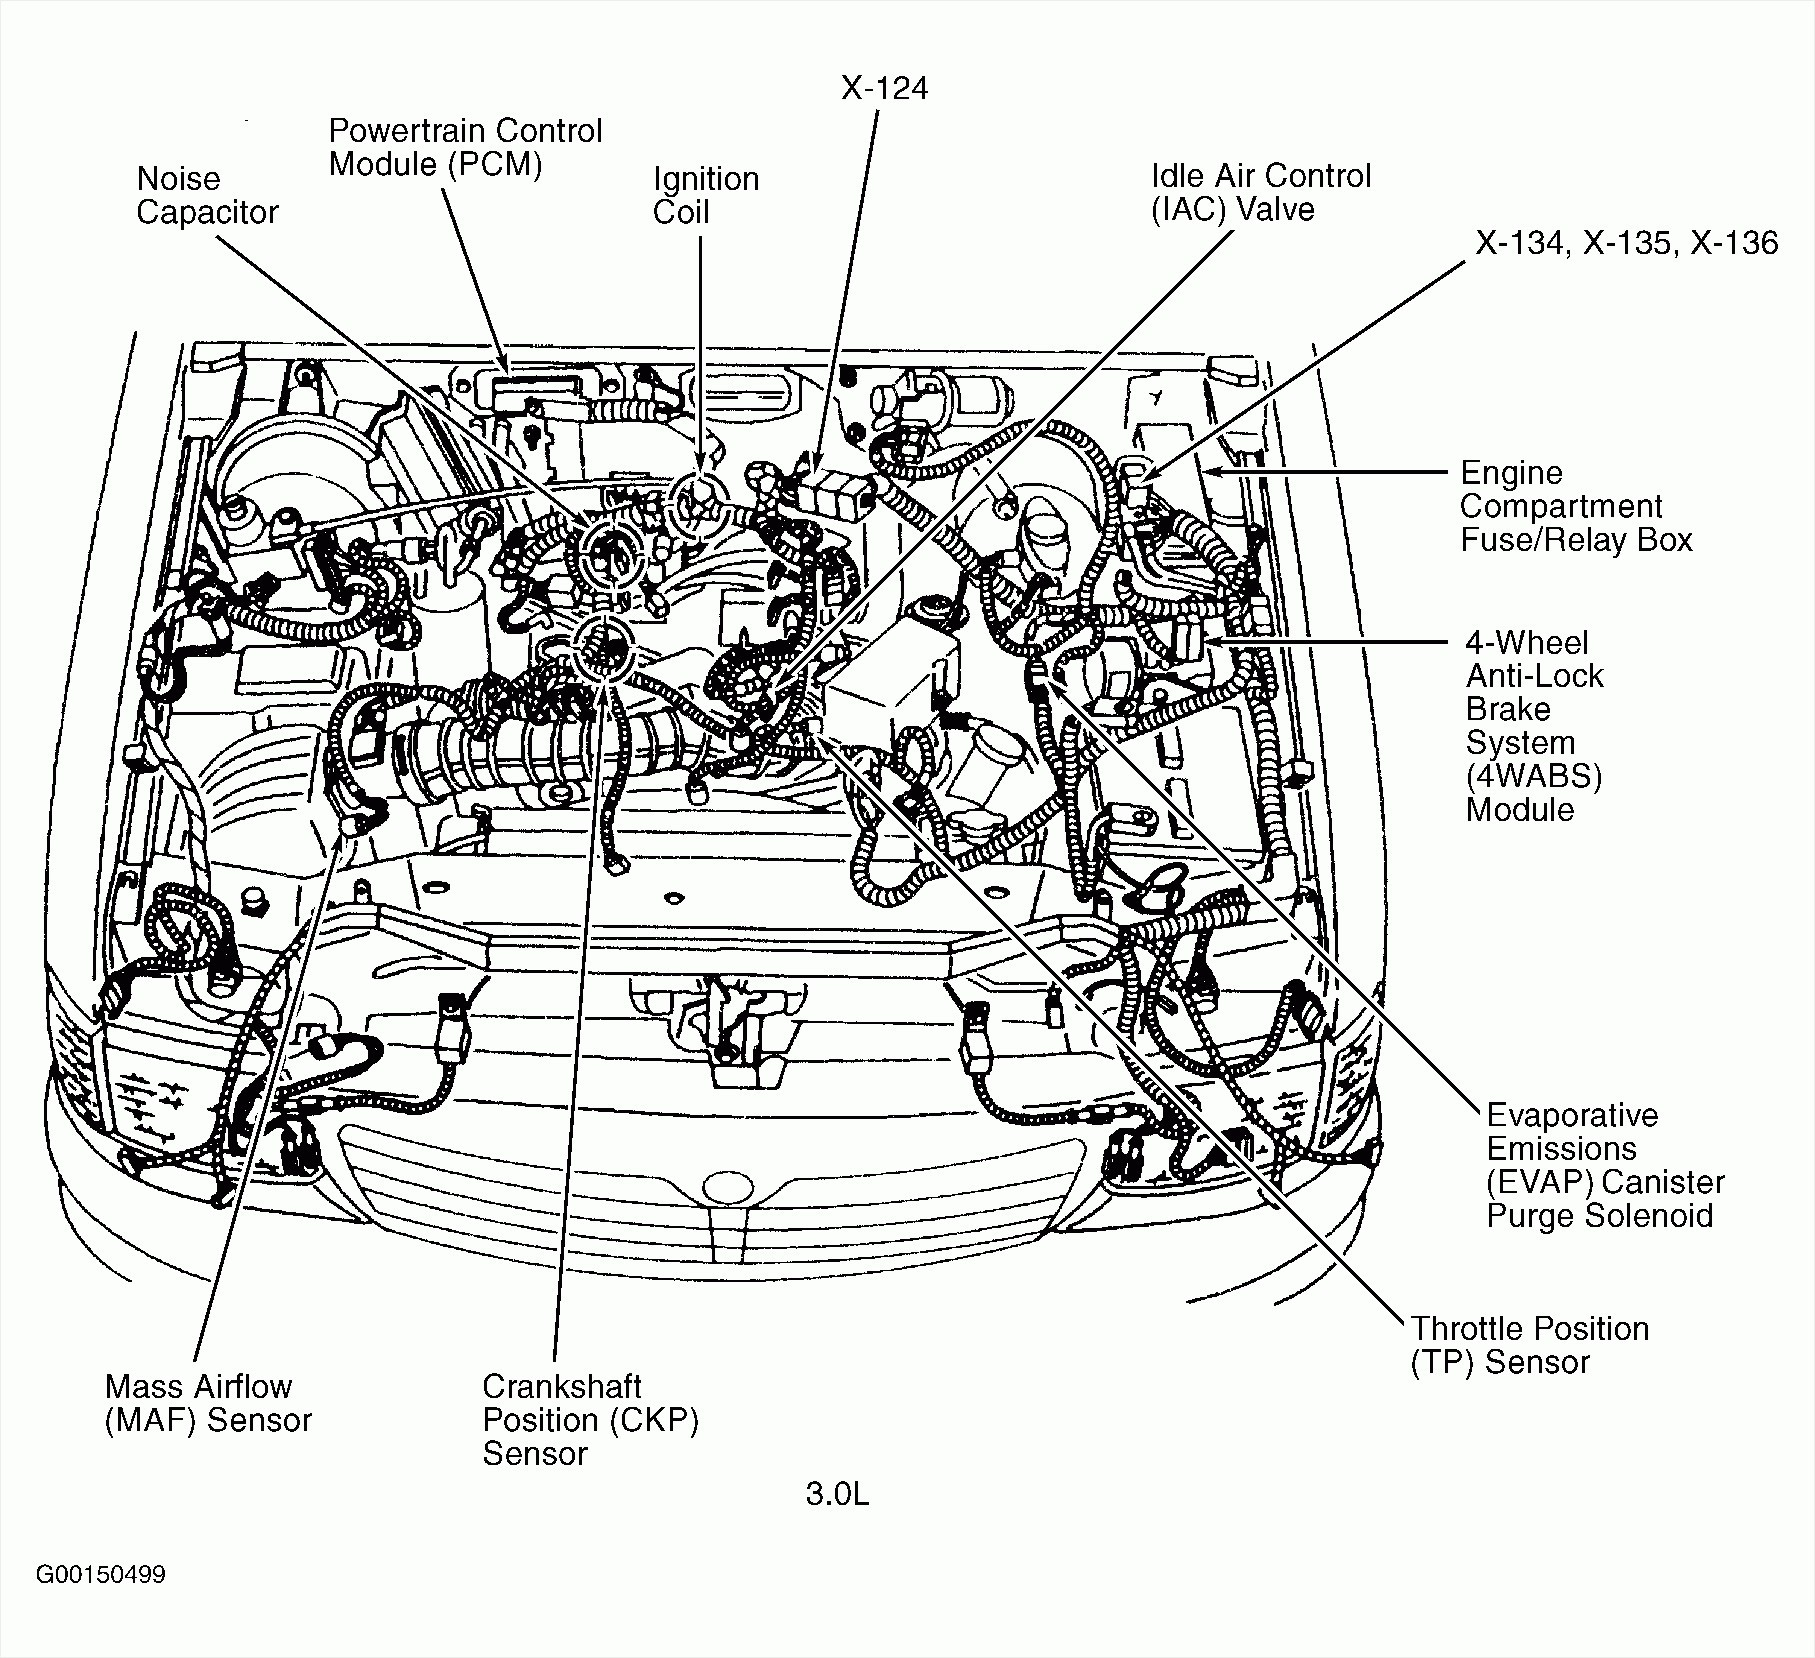 1997 Mitsubishi 3000gt Engine Diagram Trusted Wiring Jeep Grand Cherokee 3 0 V6 Coolant Simple Electronic